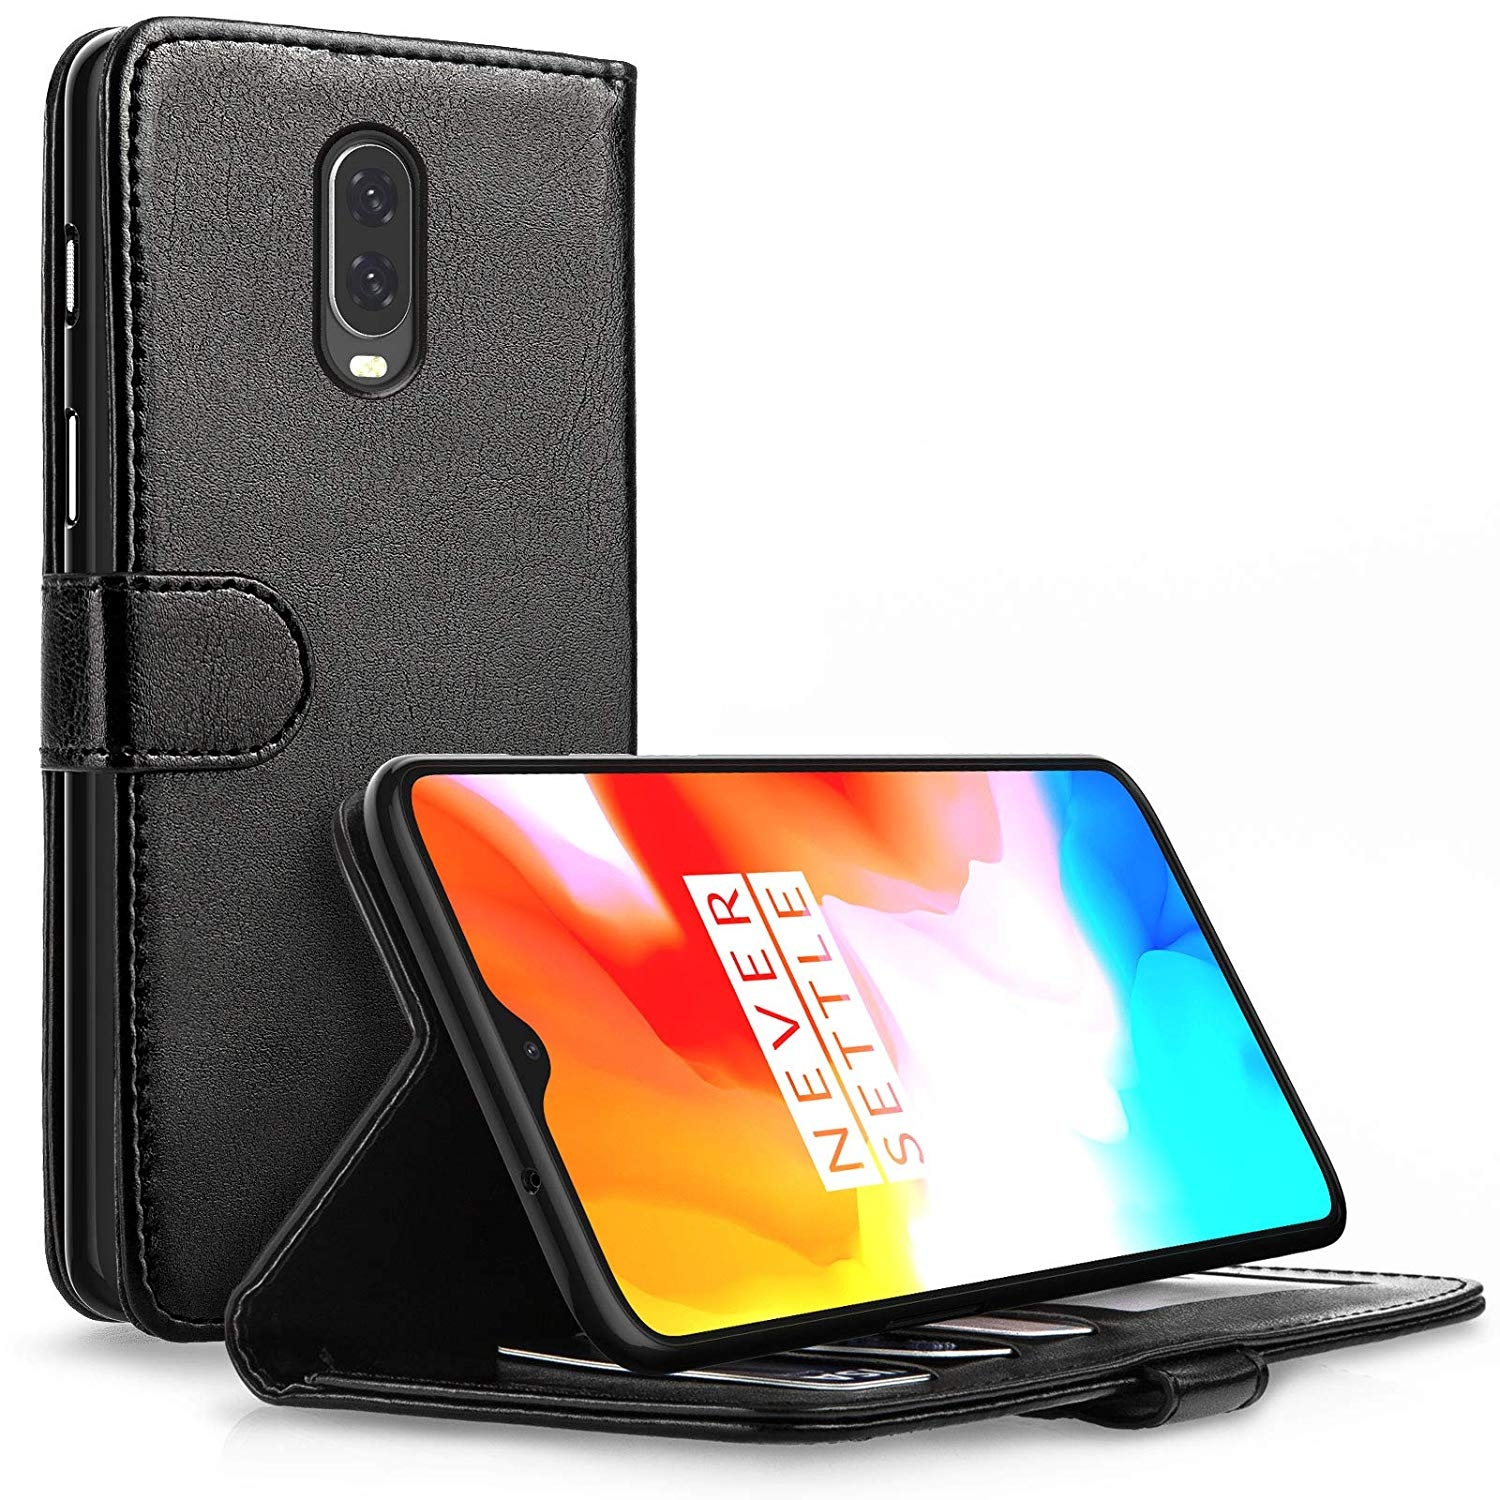 Caseflex Θήκη - Πορτοφόλι Leather Effect Oneplus 6T - Black (CS000016ON)